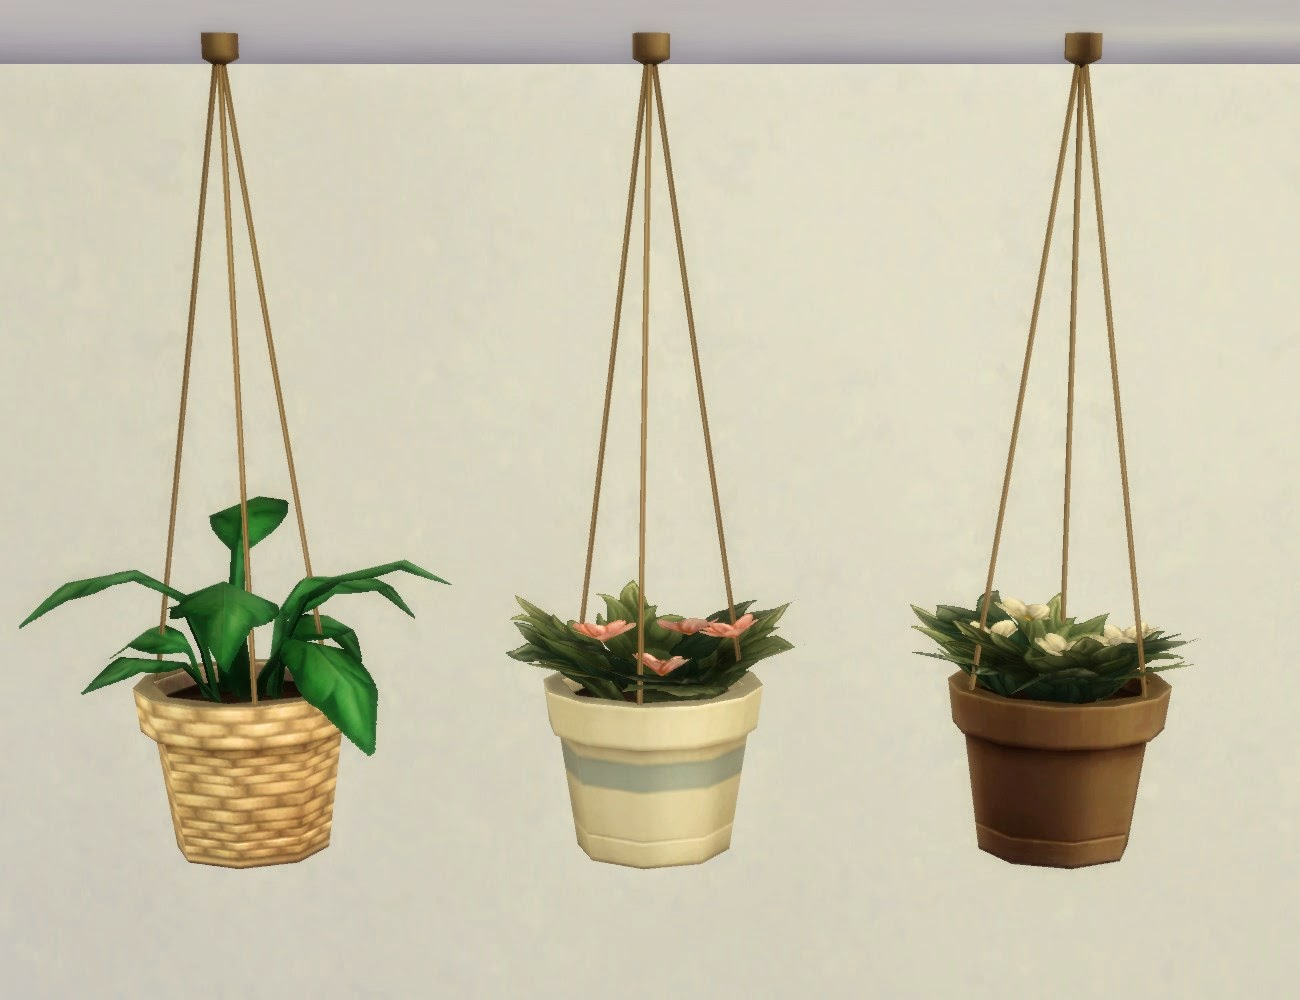 Hanging Chair The Sims 4 Wooden Office Chairs Without Wheels My Blog Modular Plants By Plasticbox